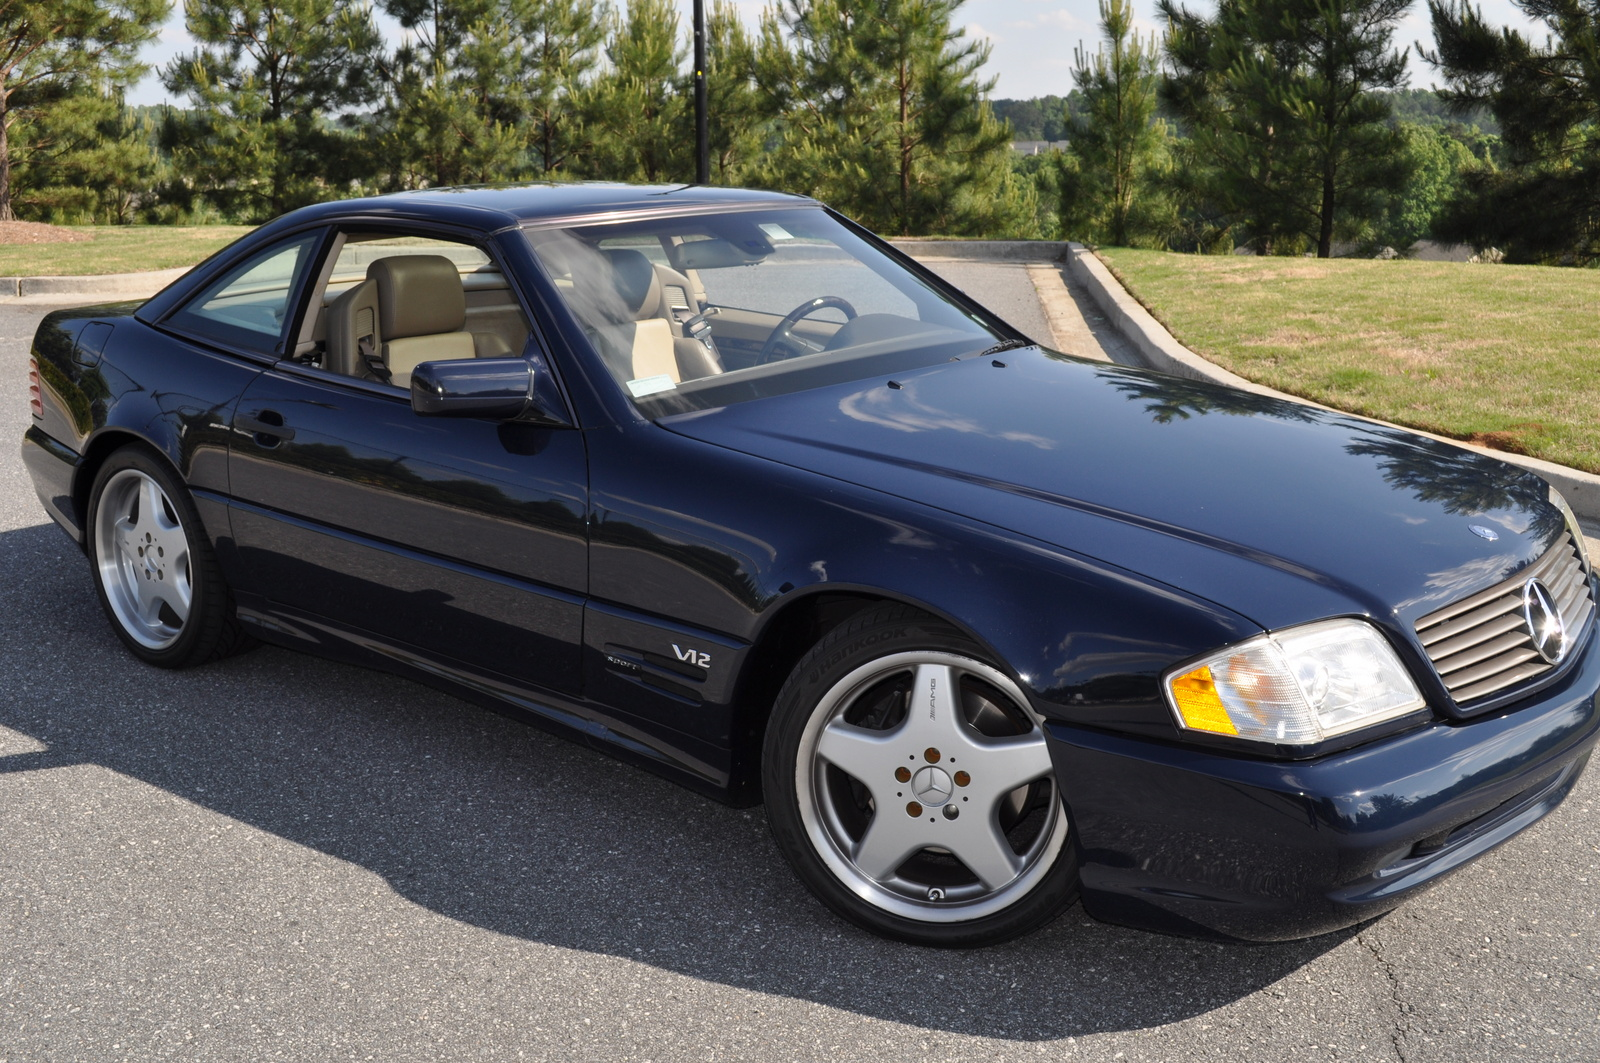 1997 mercedes benz sl class pictures cargurus for 1997 mercedes benz e320 review